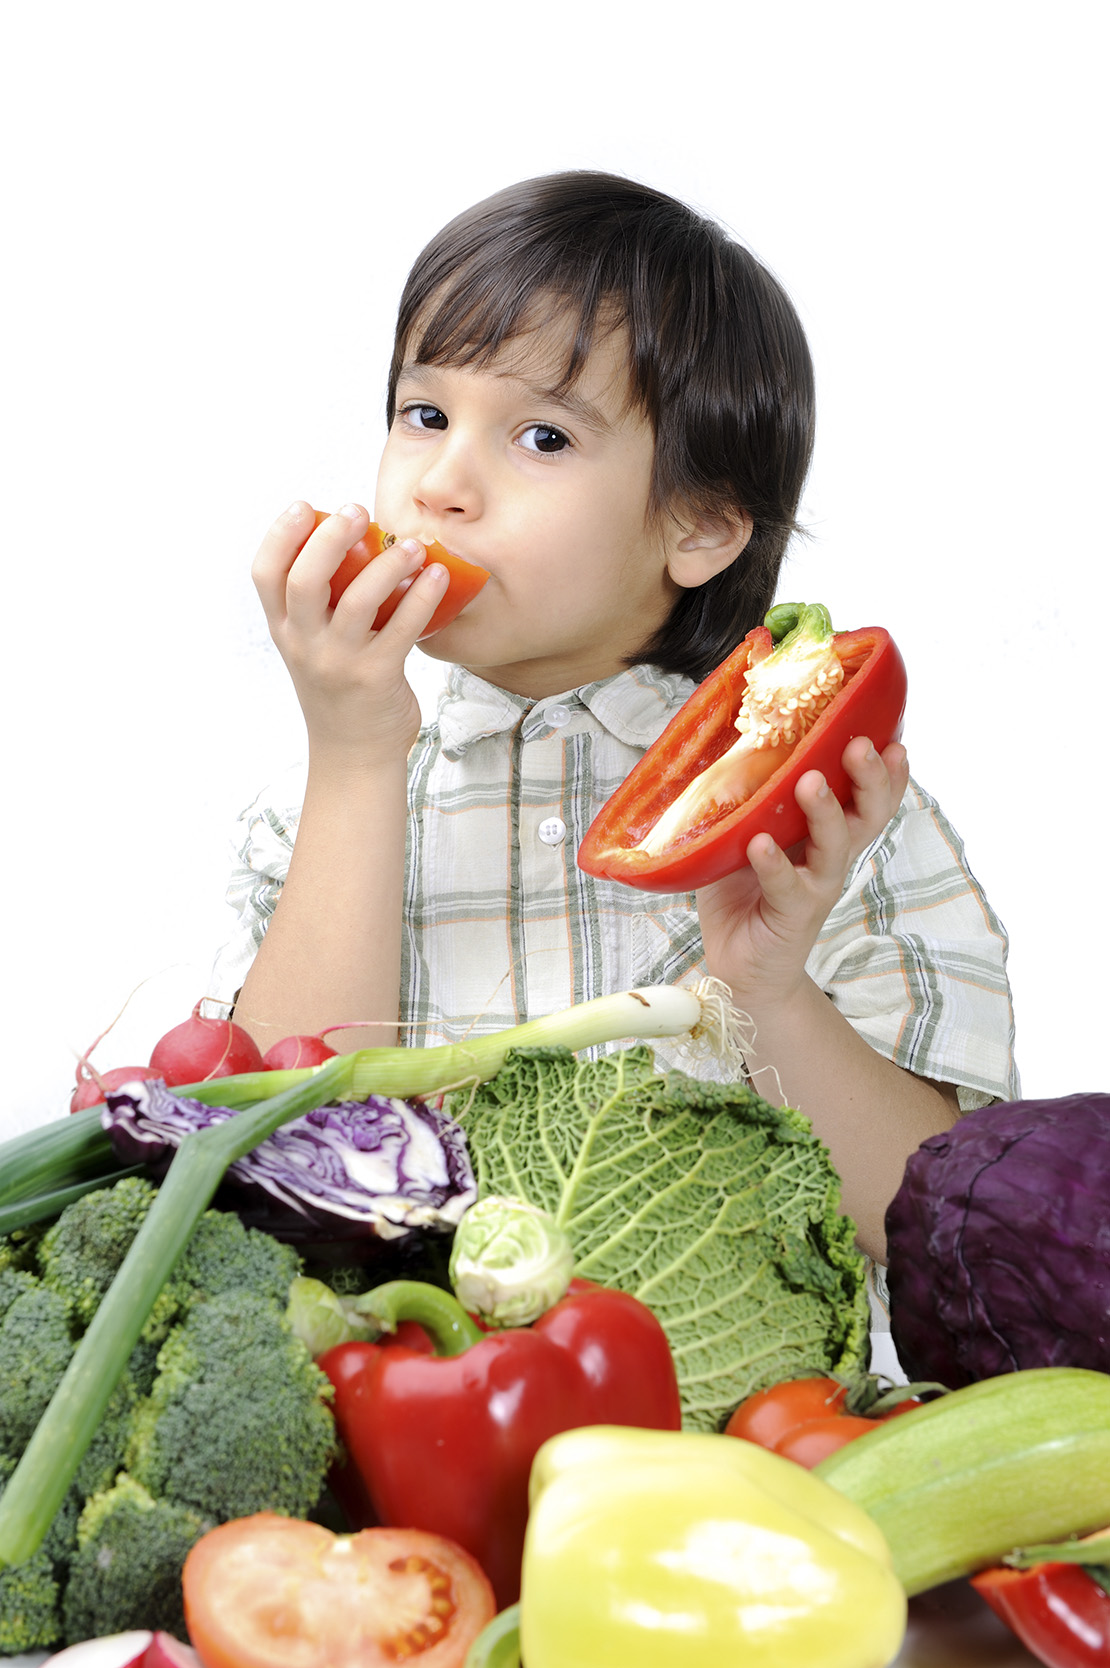 Cute kid with healthy food.